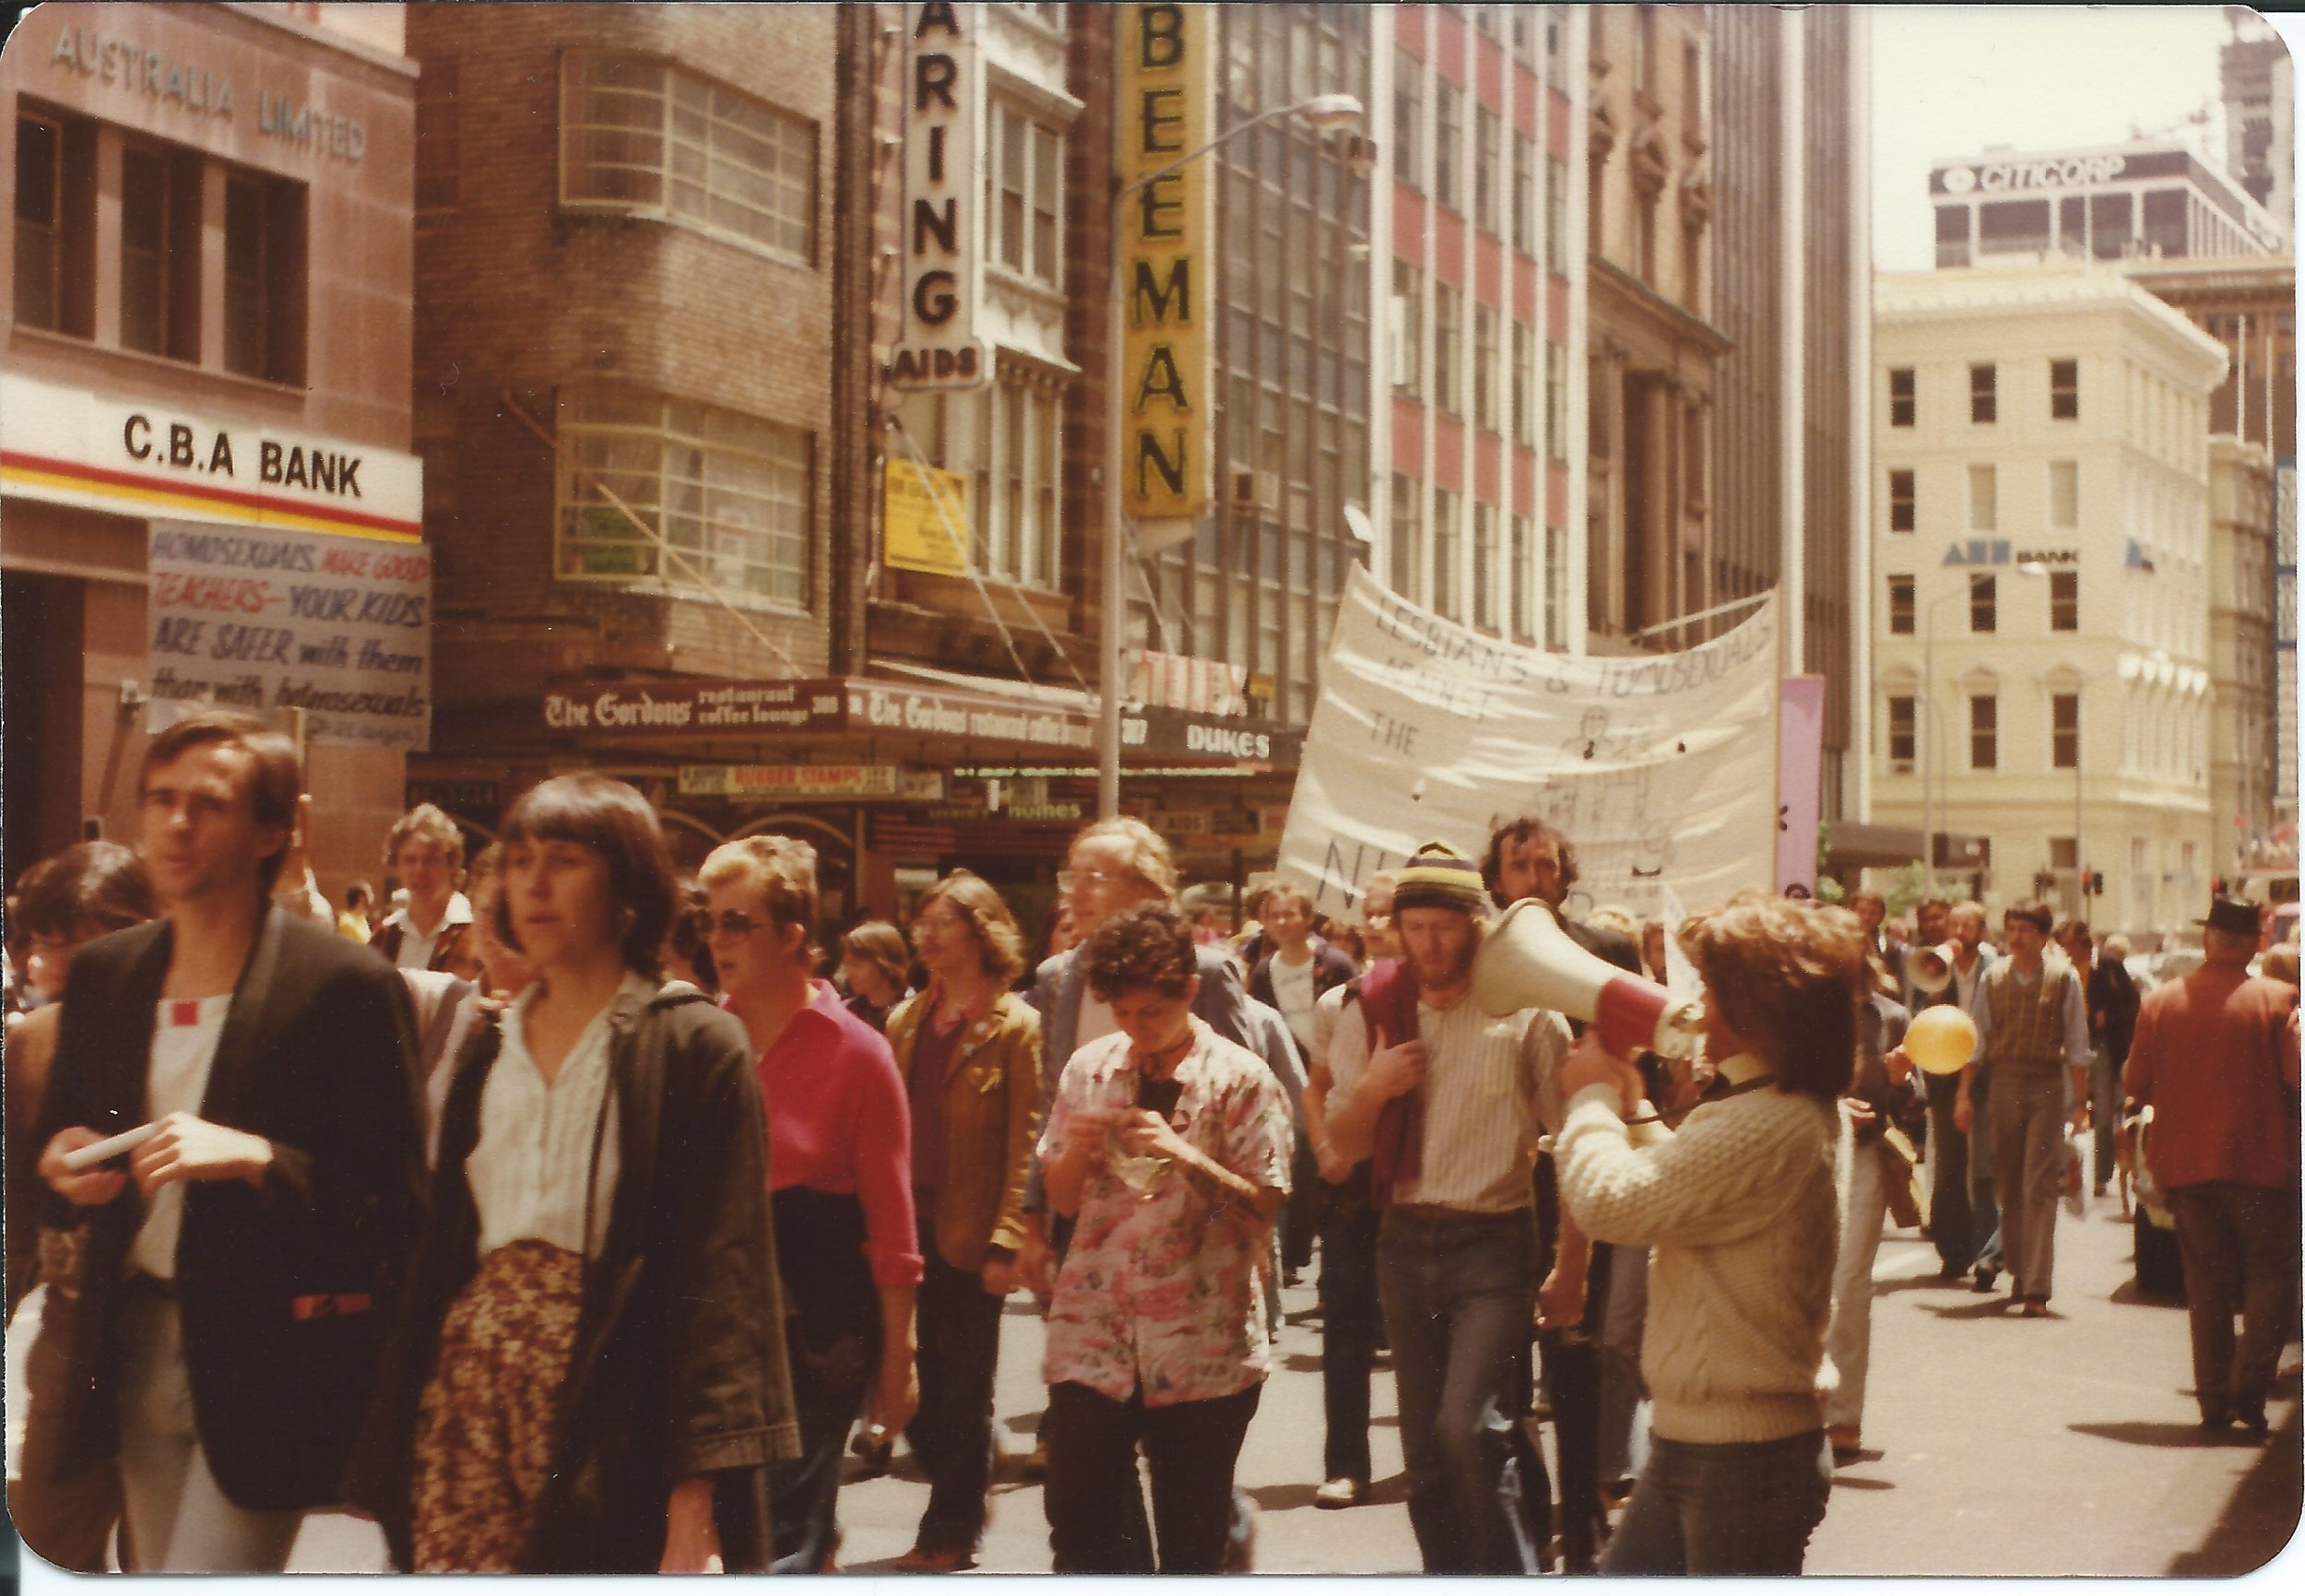 PIONEER NAMES - We are proud of the rich history of LGBTIQ Sydney. Our Pioneer Names project pieces together some of the giants of Sydney's struggle for rights and records the names of those who organised, protested and called out discrimination. Find out more here